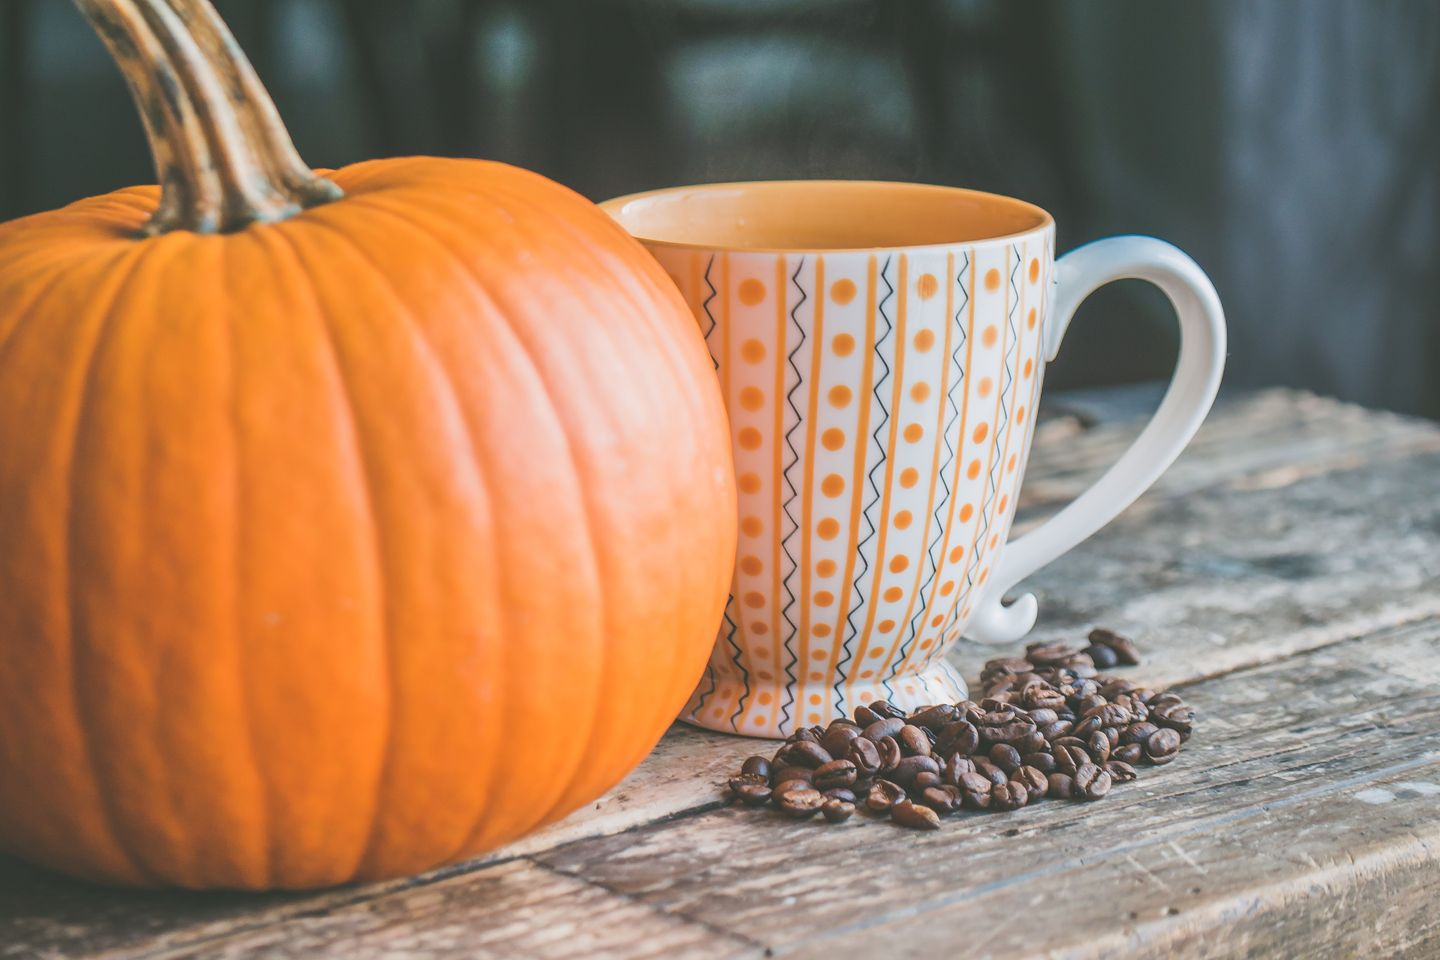 Cannabis infused pumpkin spice latte